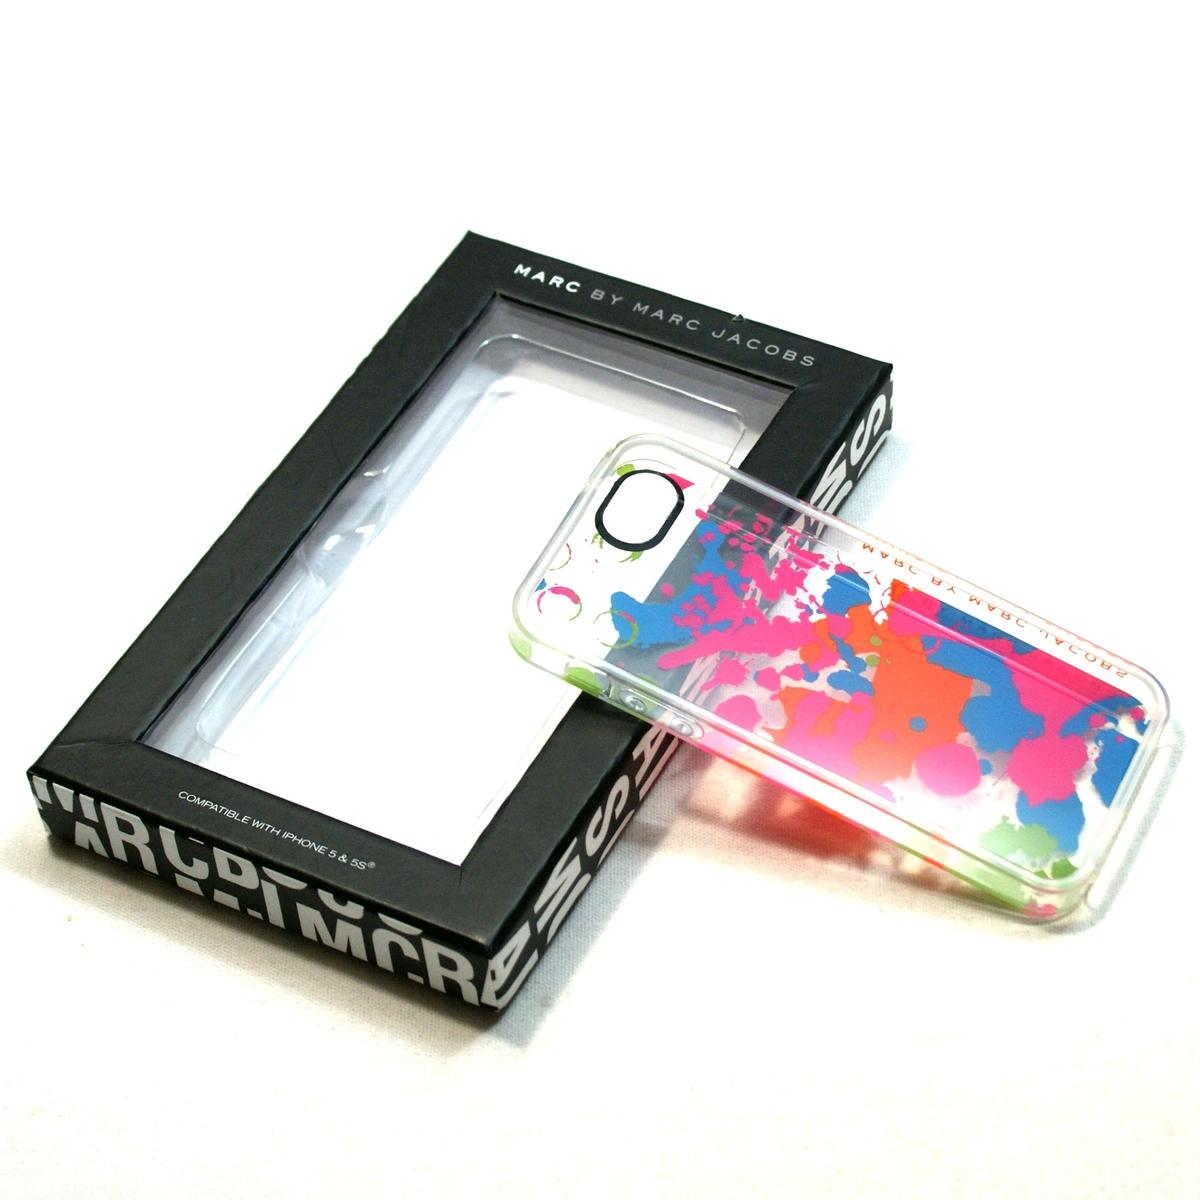 Case Design marc jacobs cell phone cases : Home Marc By Marc Jacobs IPhone 5 Case Premium Silicone Orange Multi ...